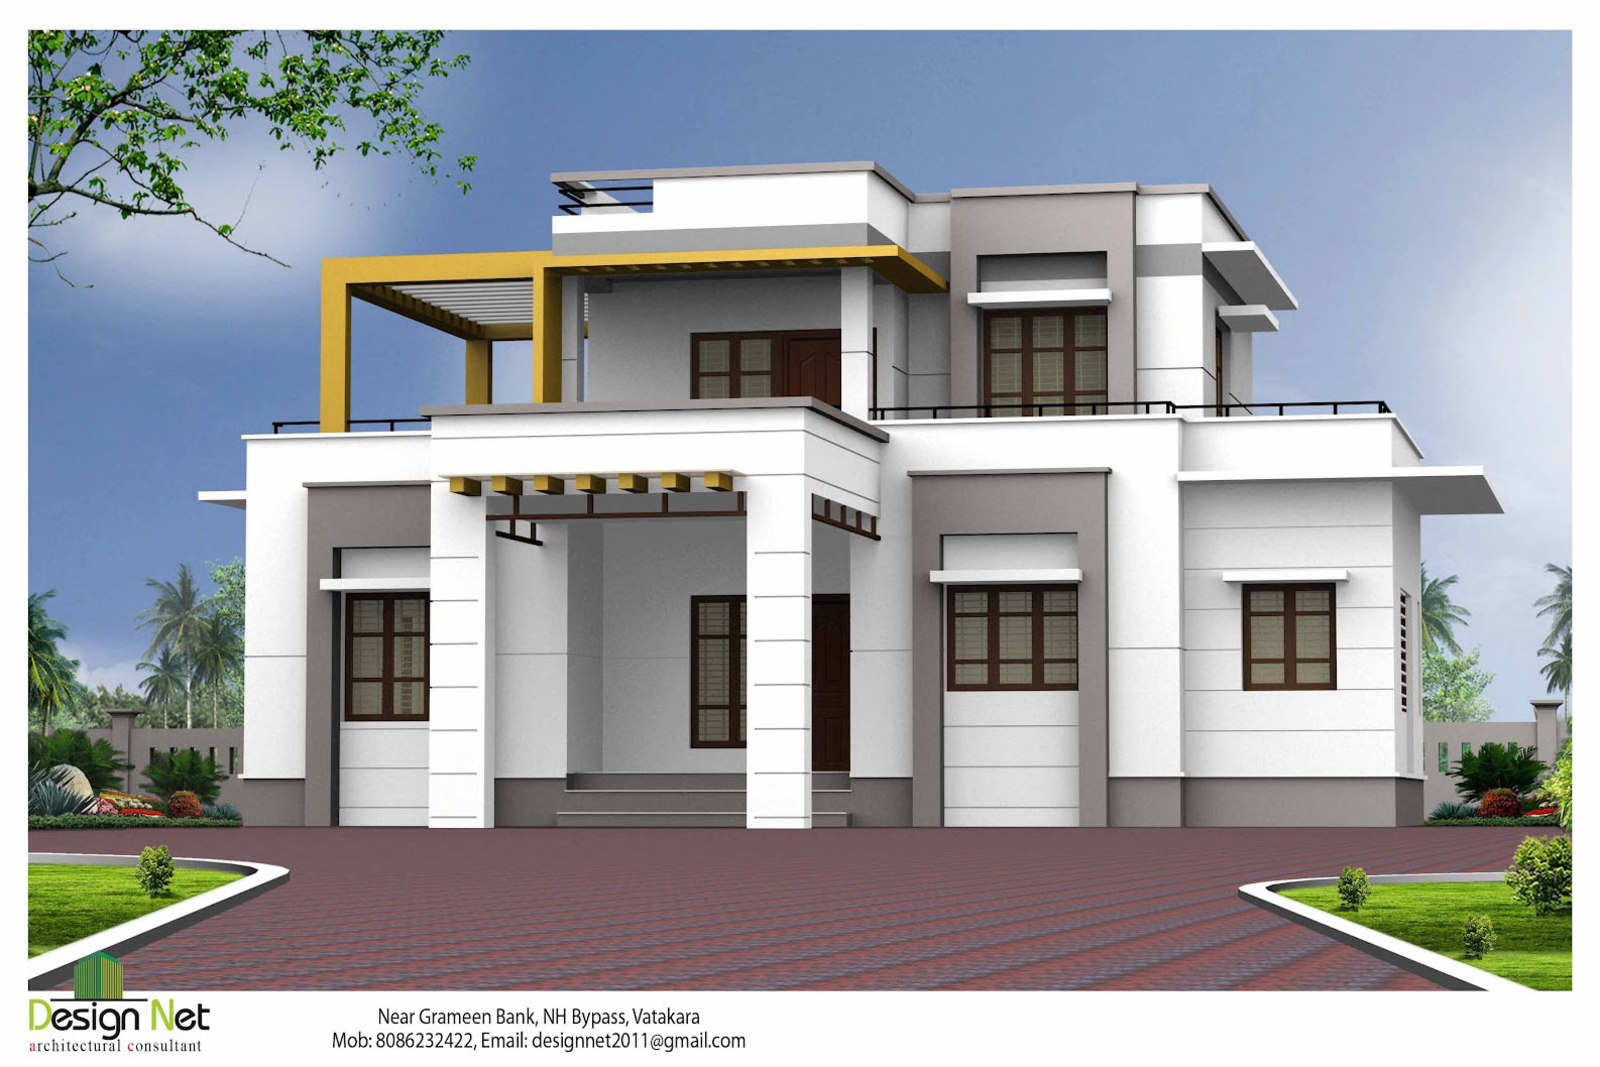 Image gallery outside house designs for Indian home exterior designs